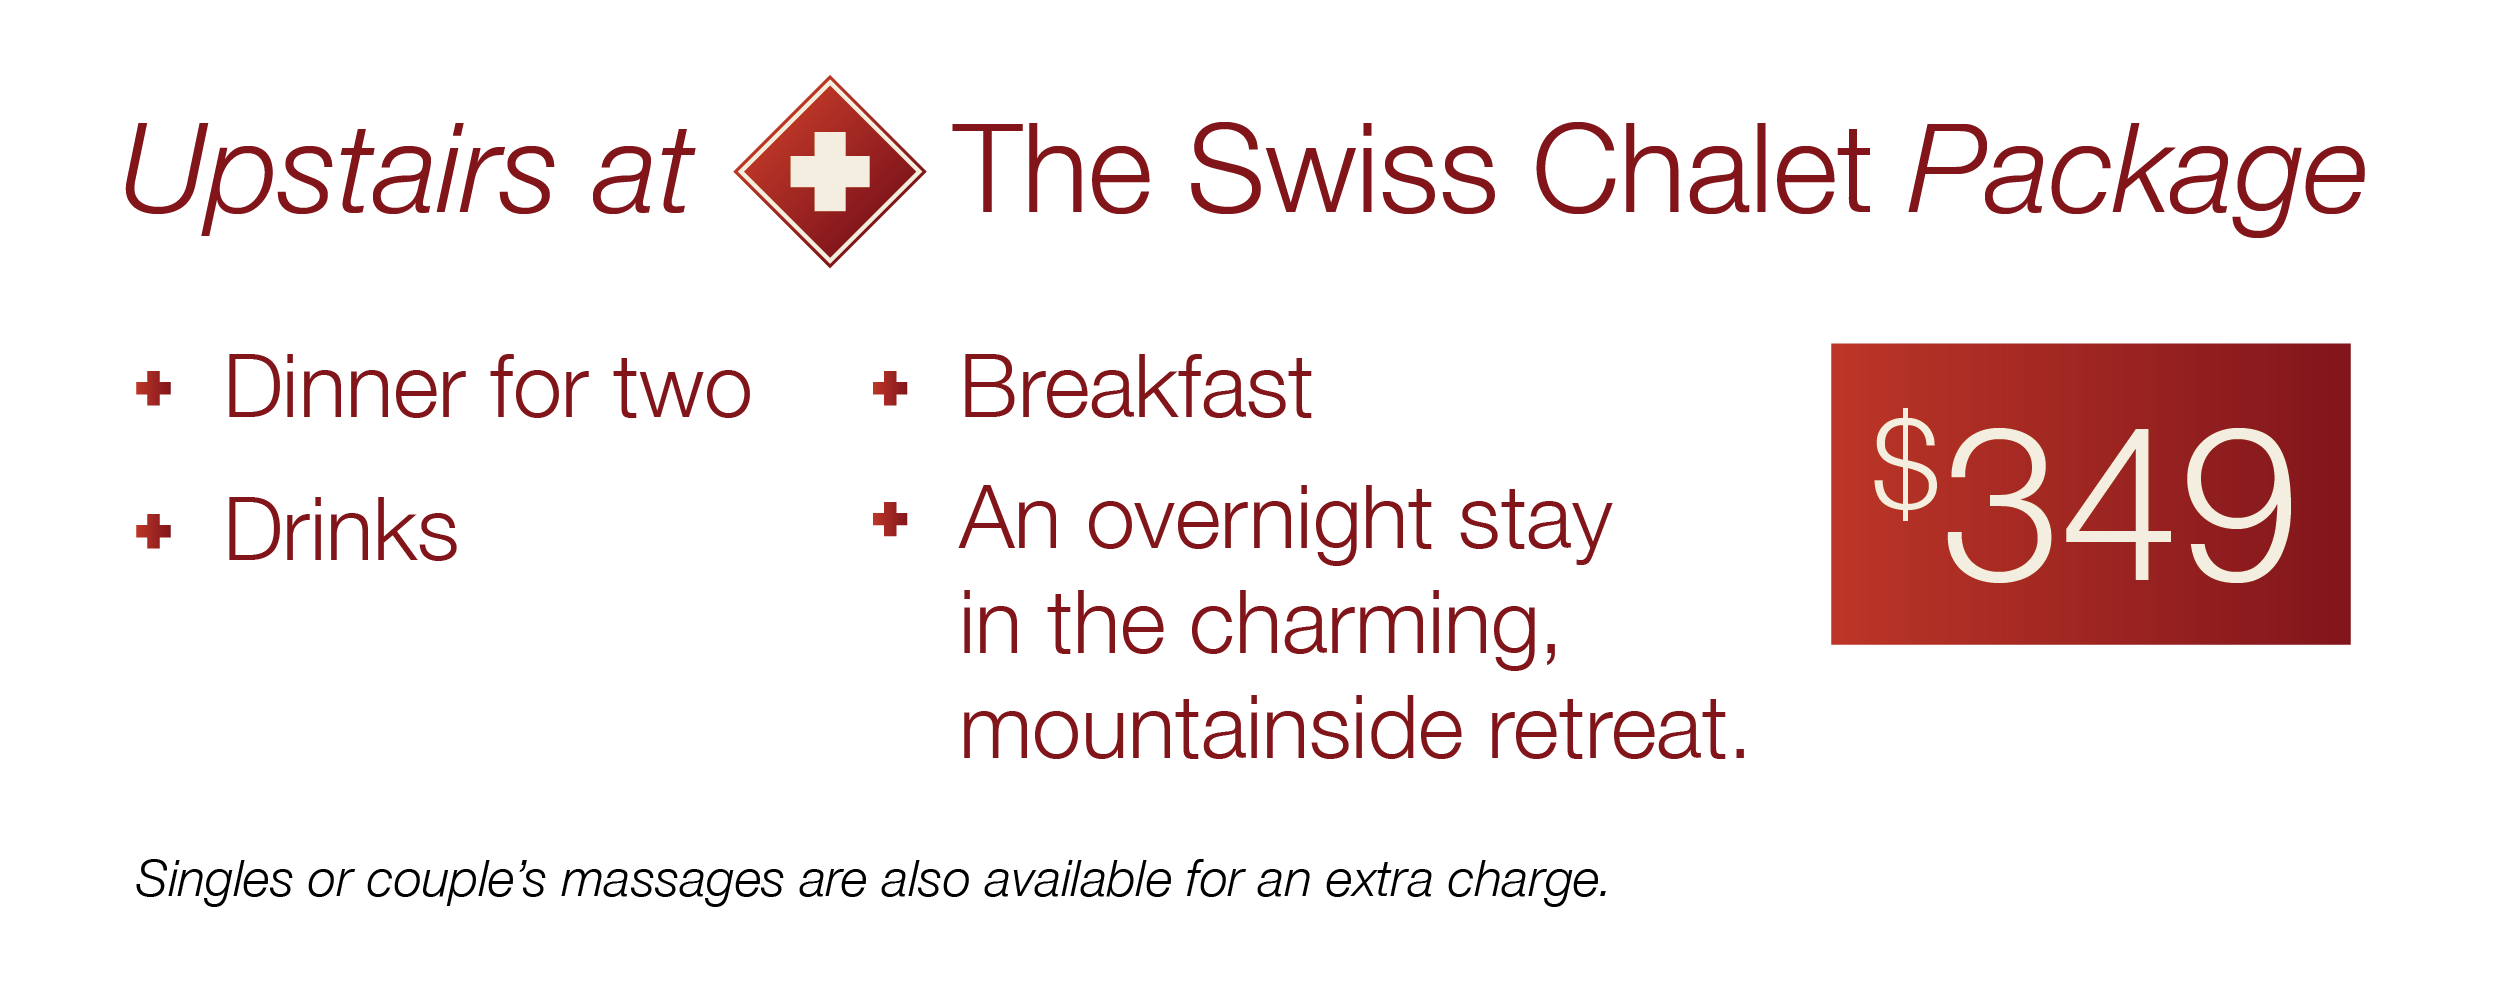 "The special ""Upstairs at the Swiss Chalet"" package includes dinner for two, drinks, and breakfast along with an overnight stay in the charming, mountainside cottage atmosphere for $349. Singles or couple's massages are also available for an extra charge."